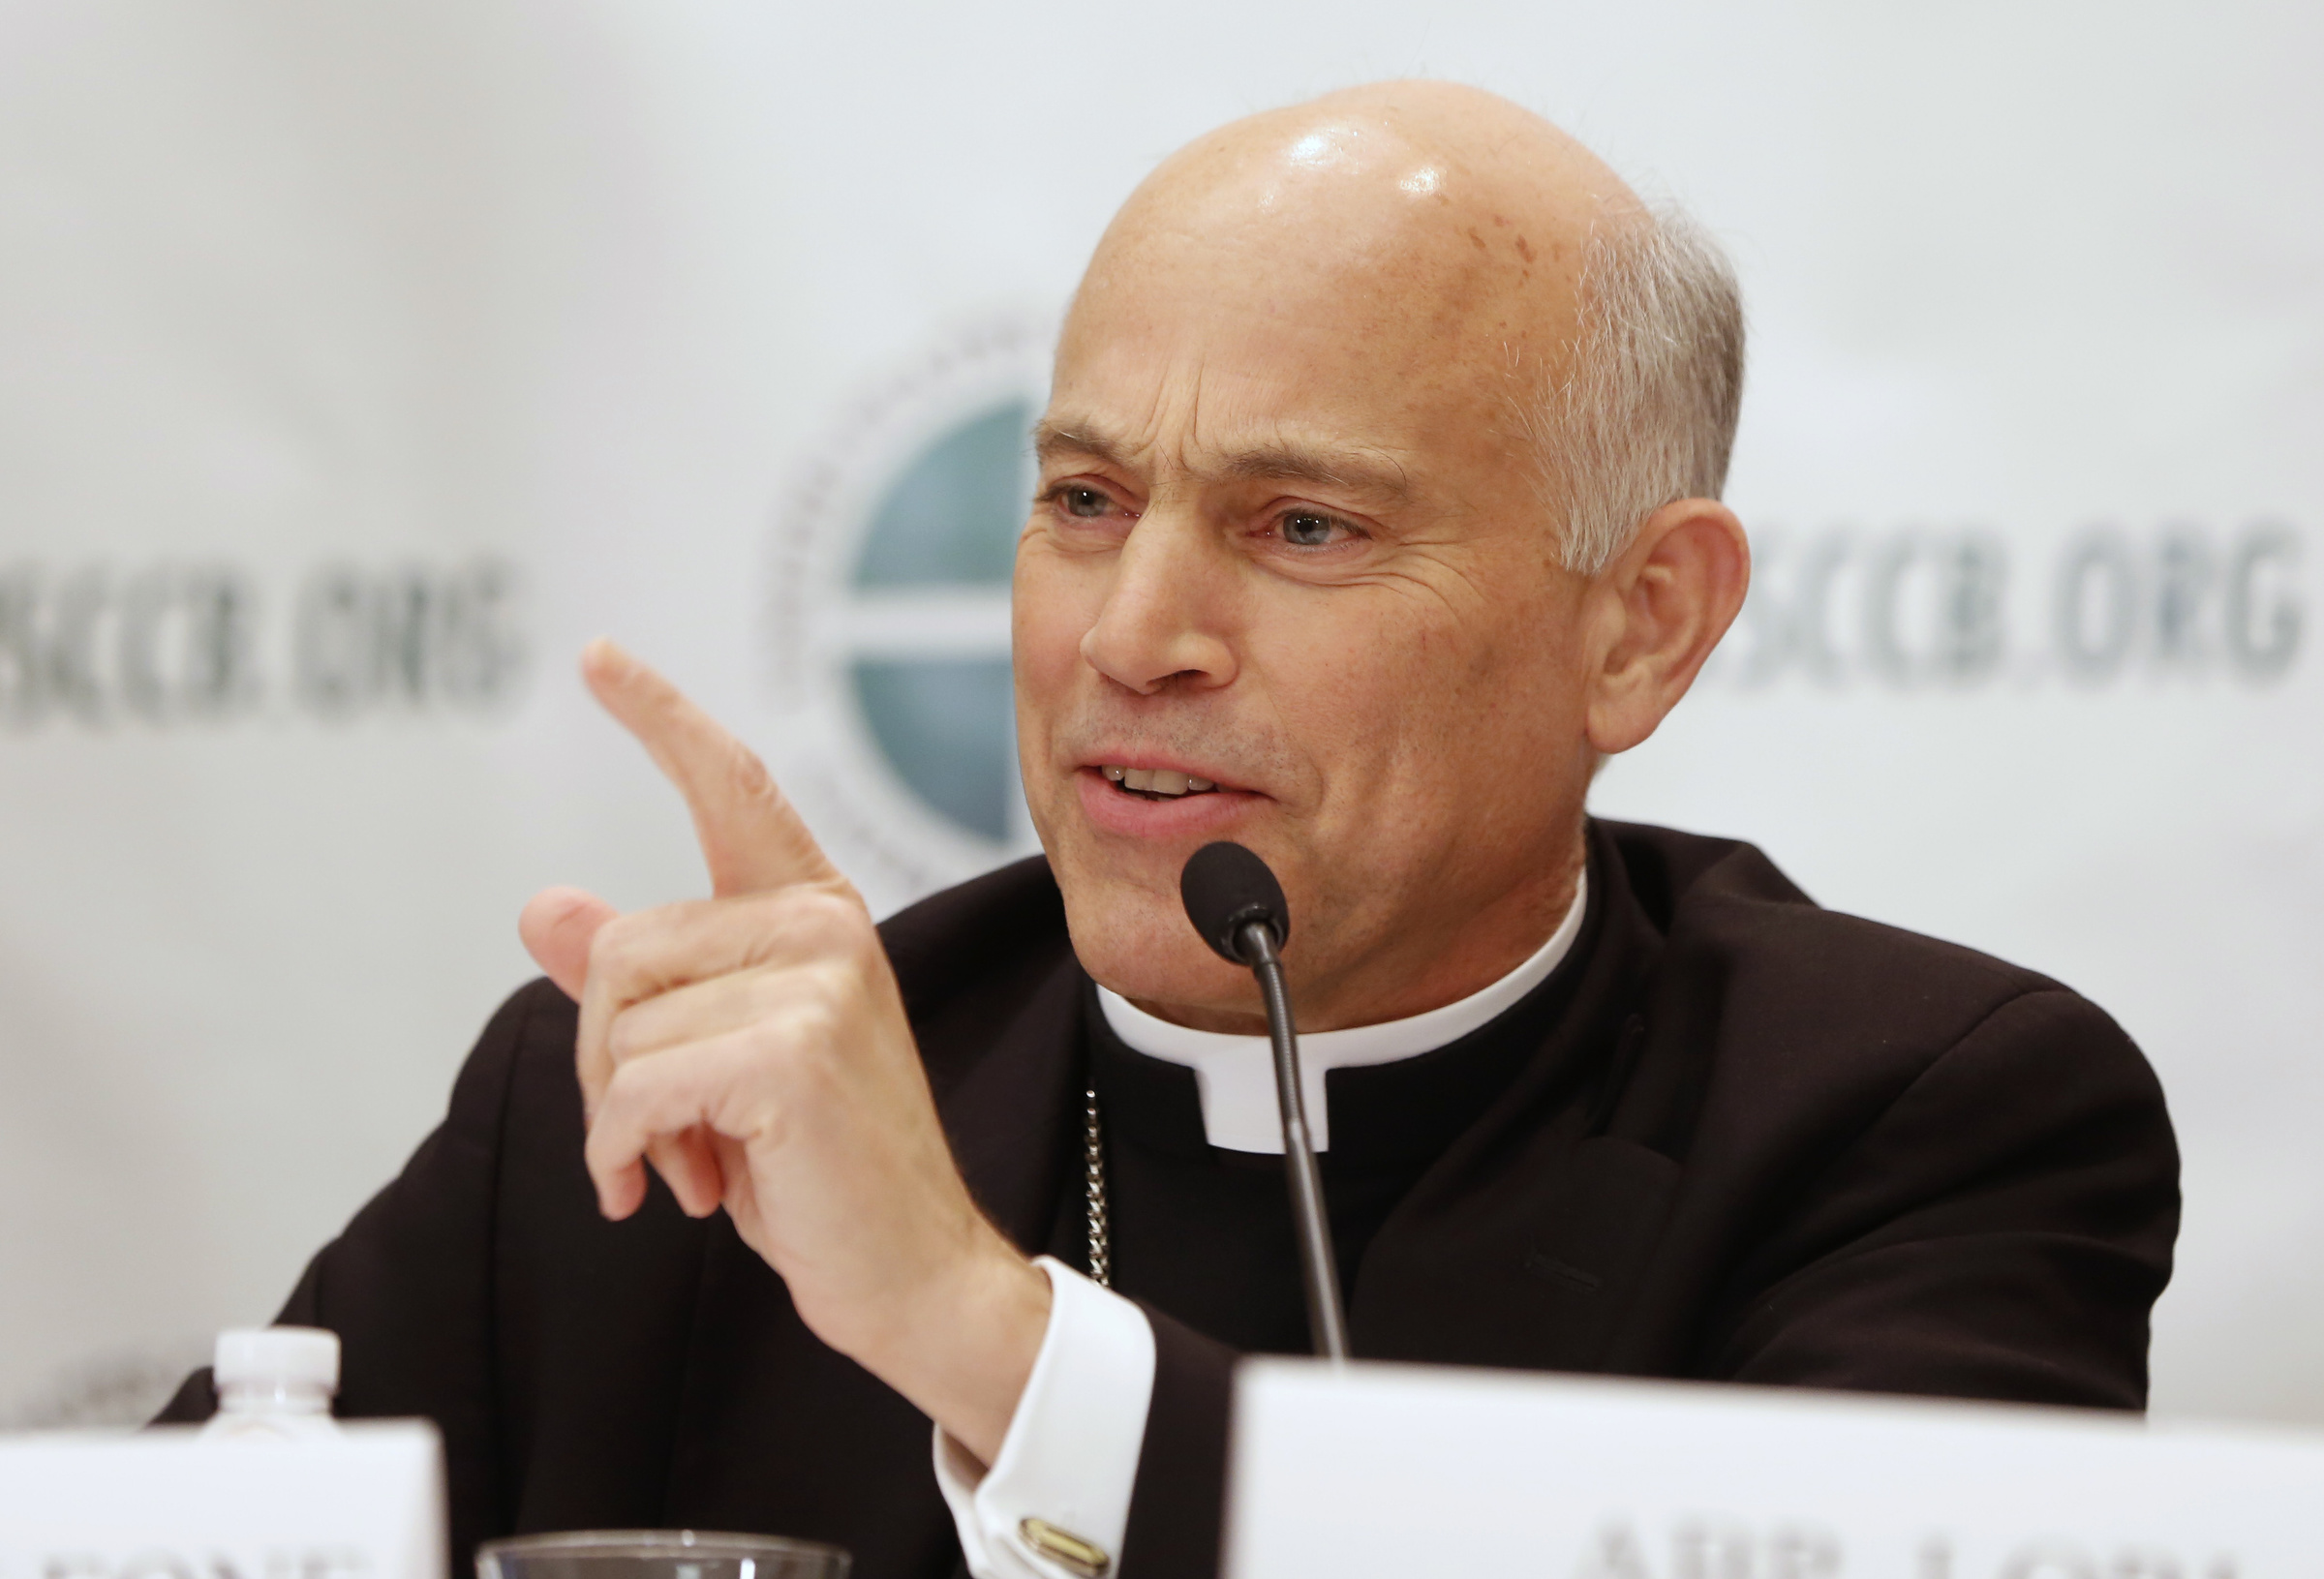 Archbishop Cordileone answers a question during news conference in Baltimore